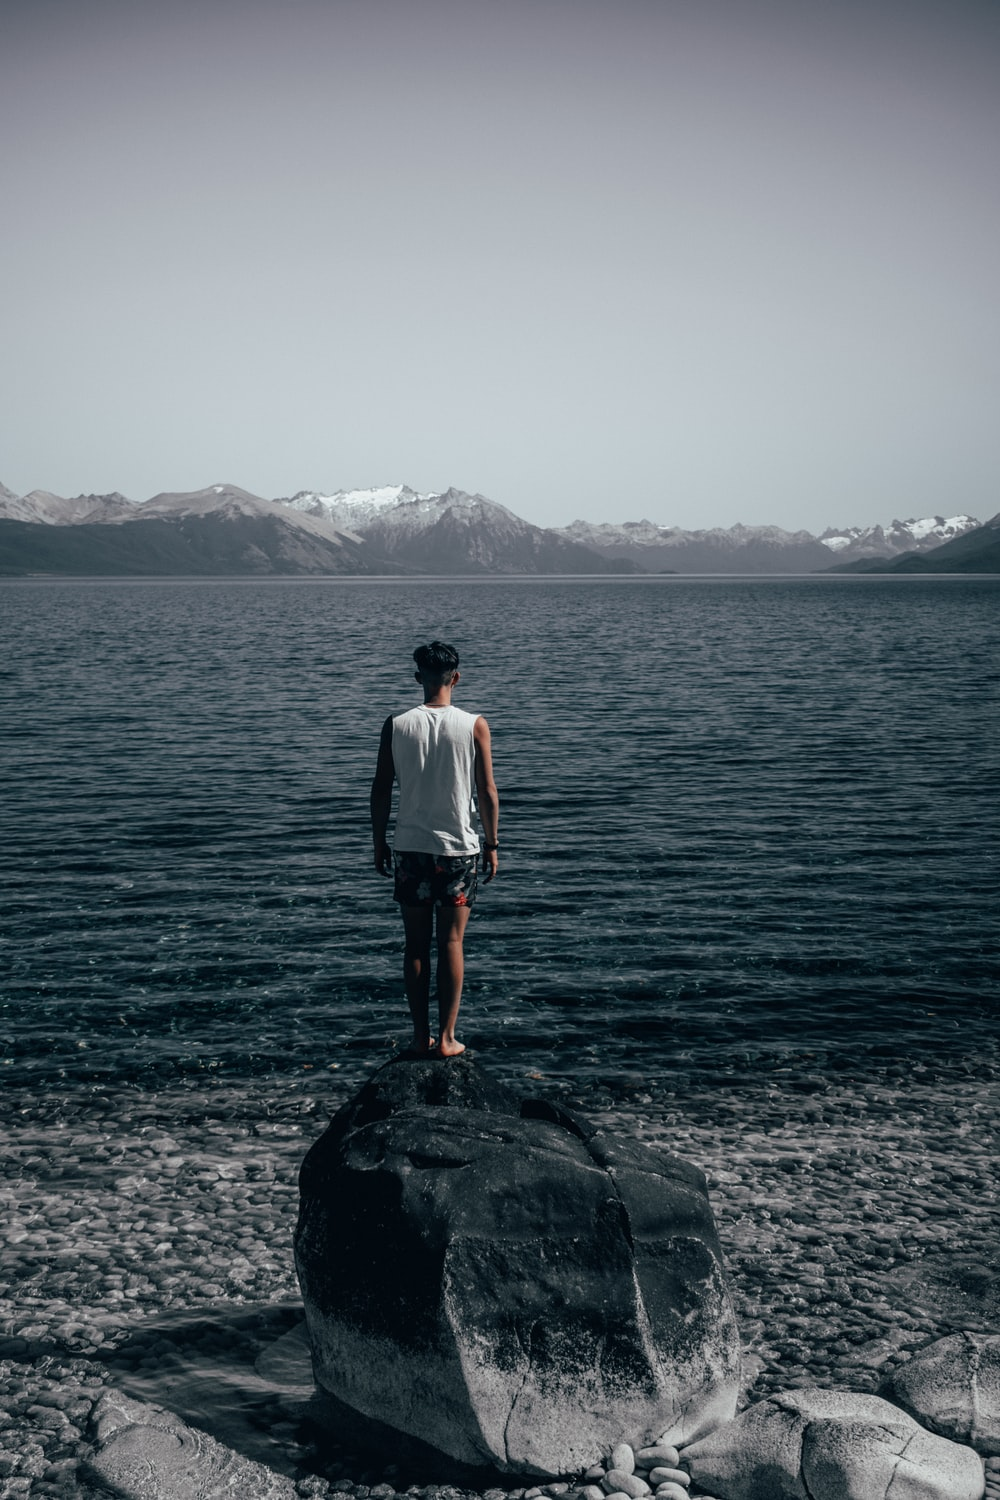 man standing on rocks looking at rippling water